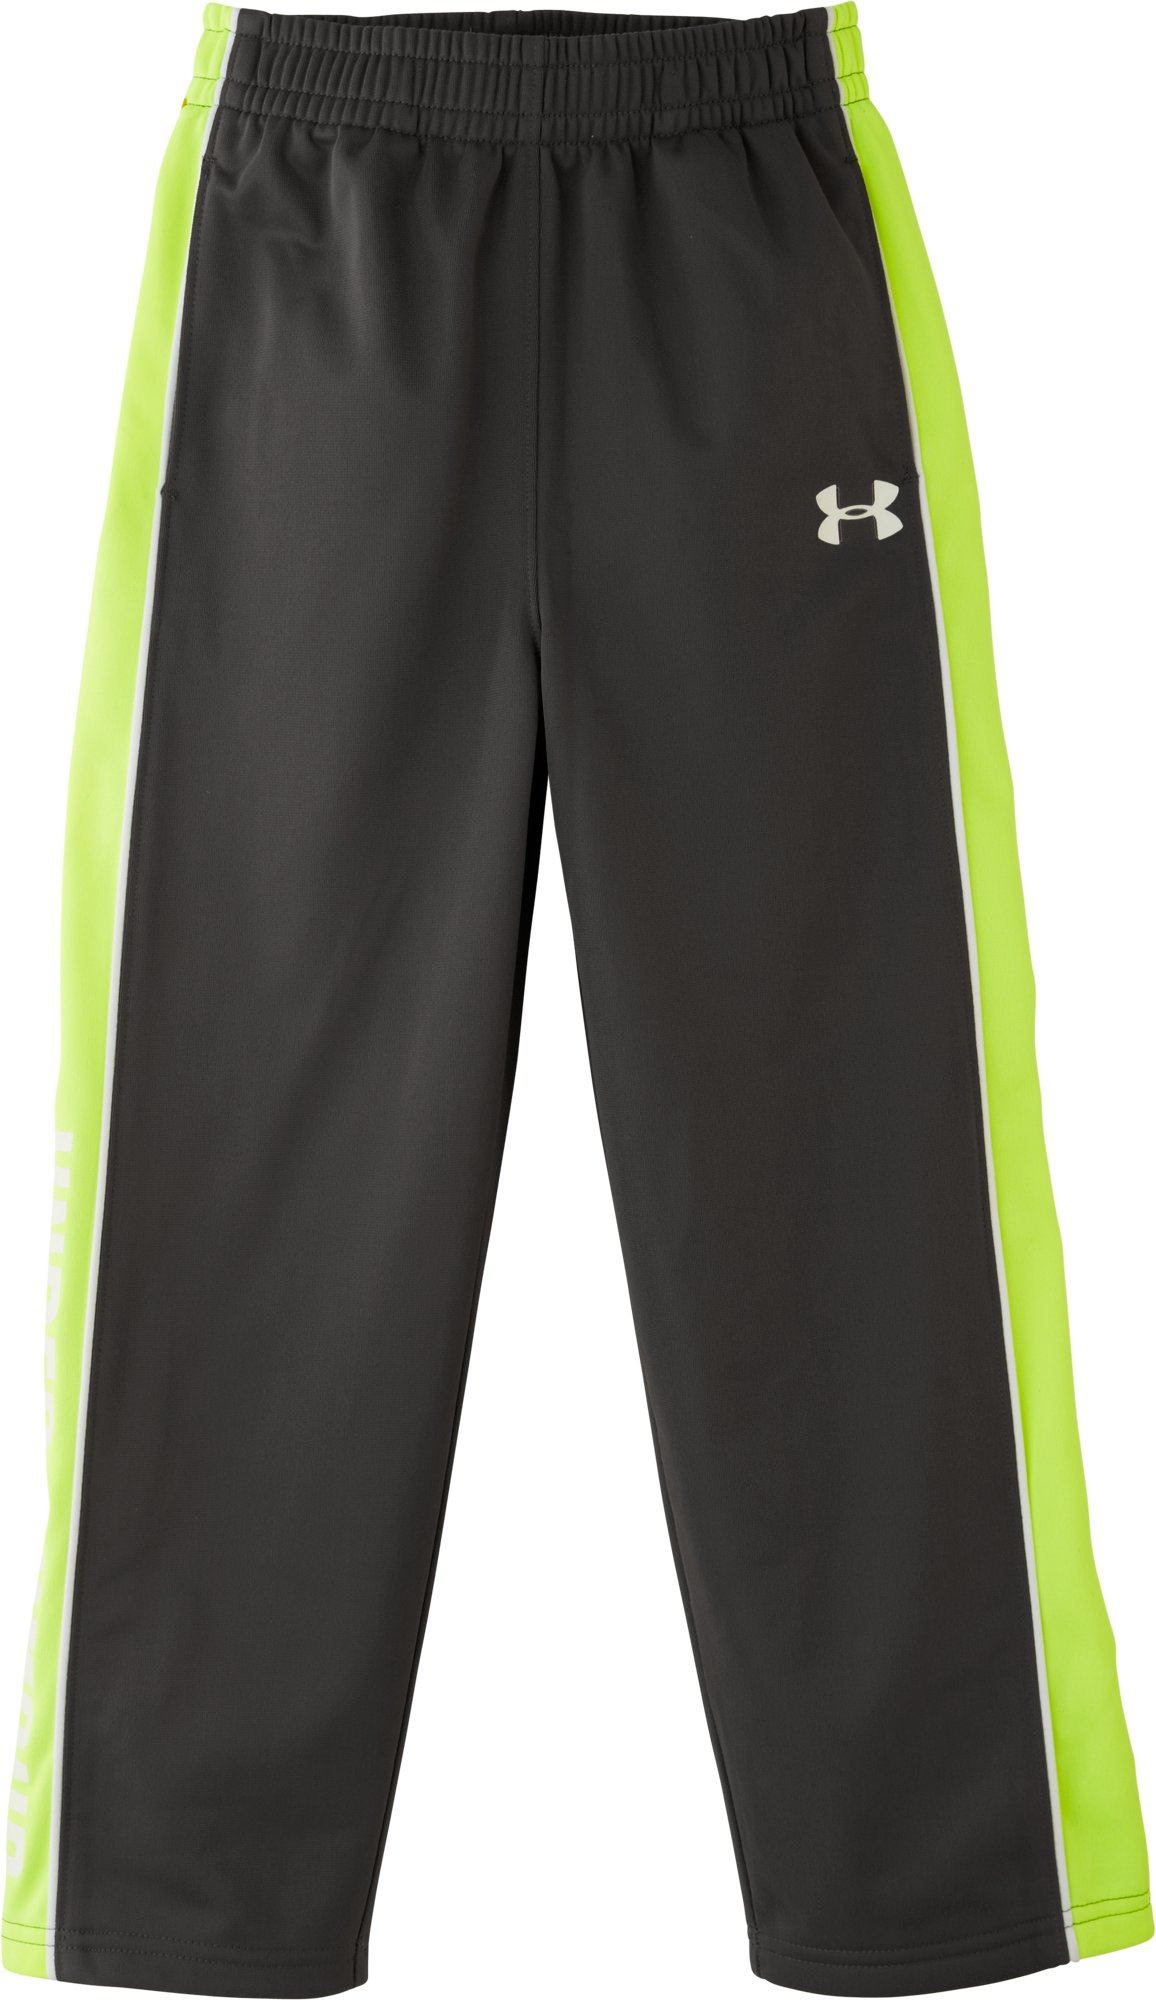 Boys' Pre-School UA Brawler Tricot Pants, Charcoal